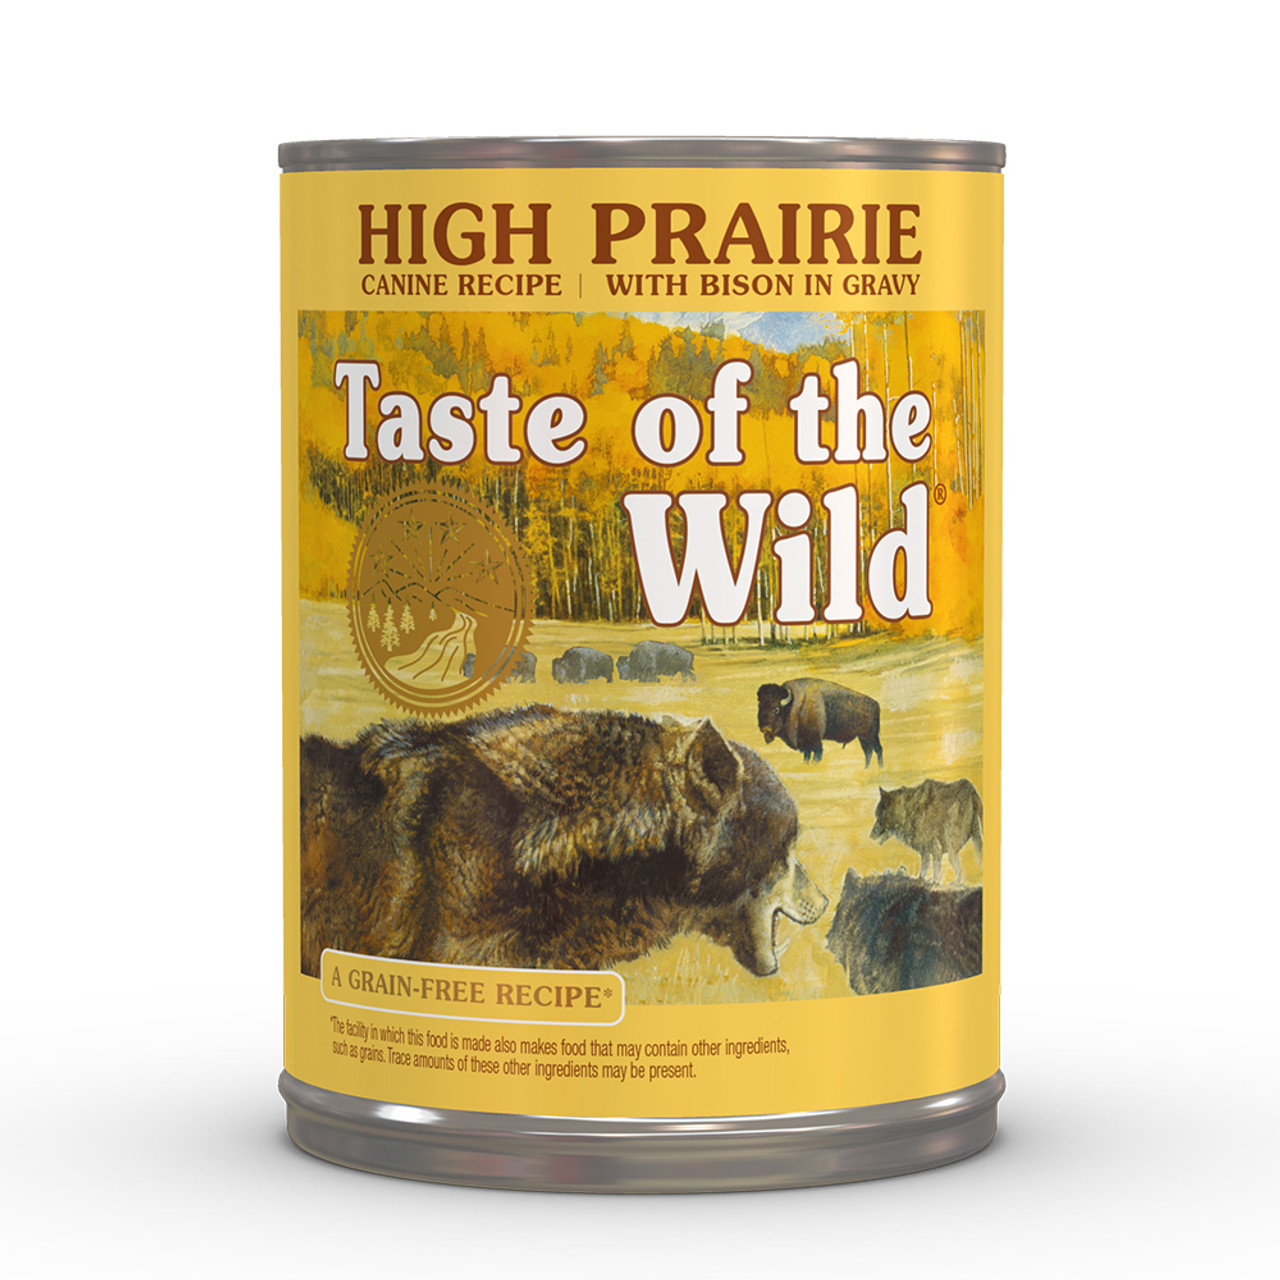 Taste of the Wild High Prairie Canine Formula Canned Dog Food - Front